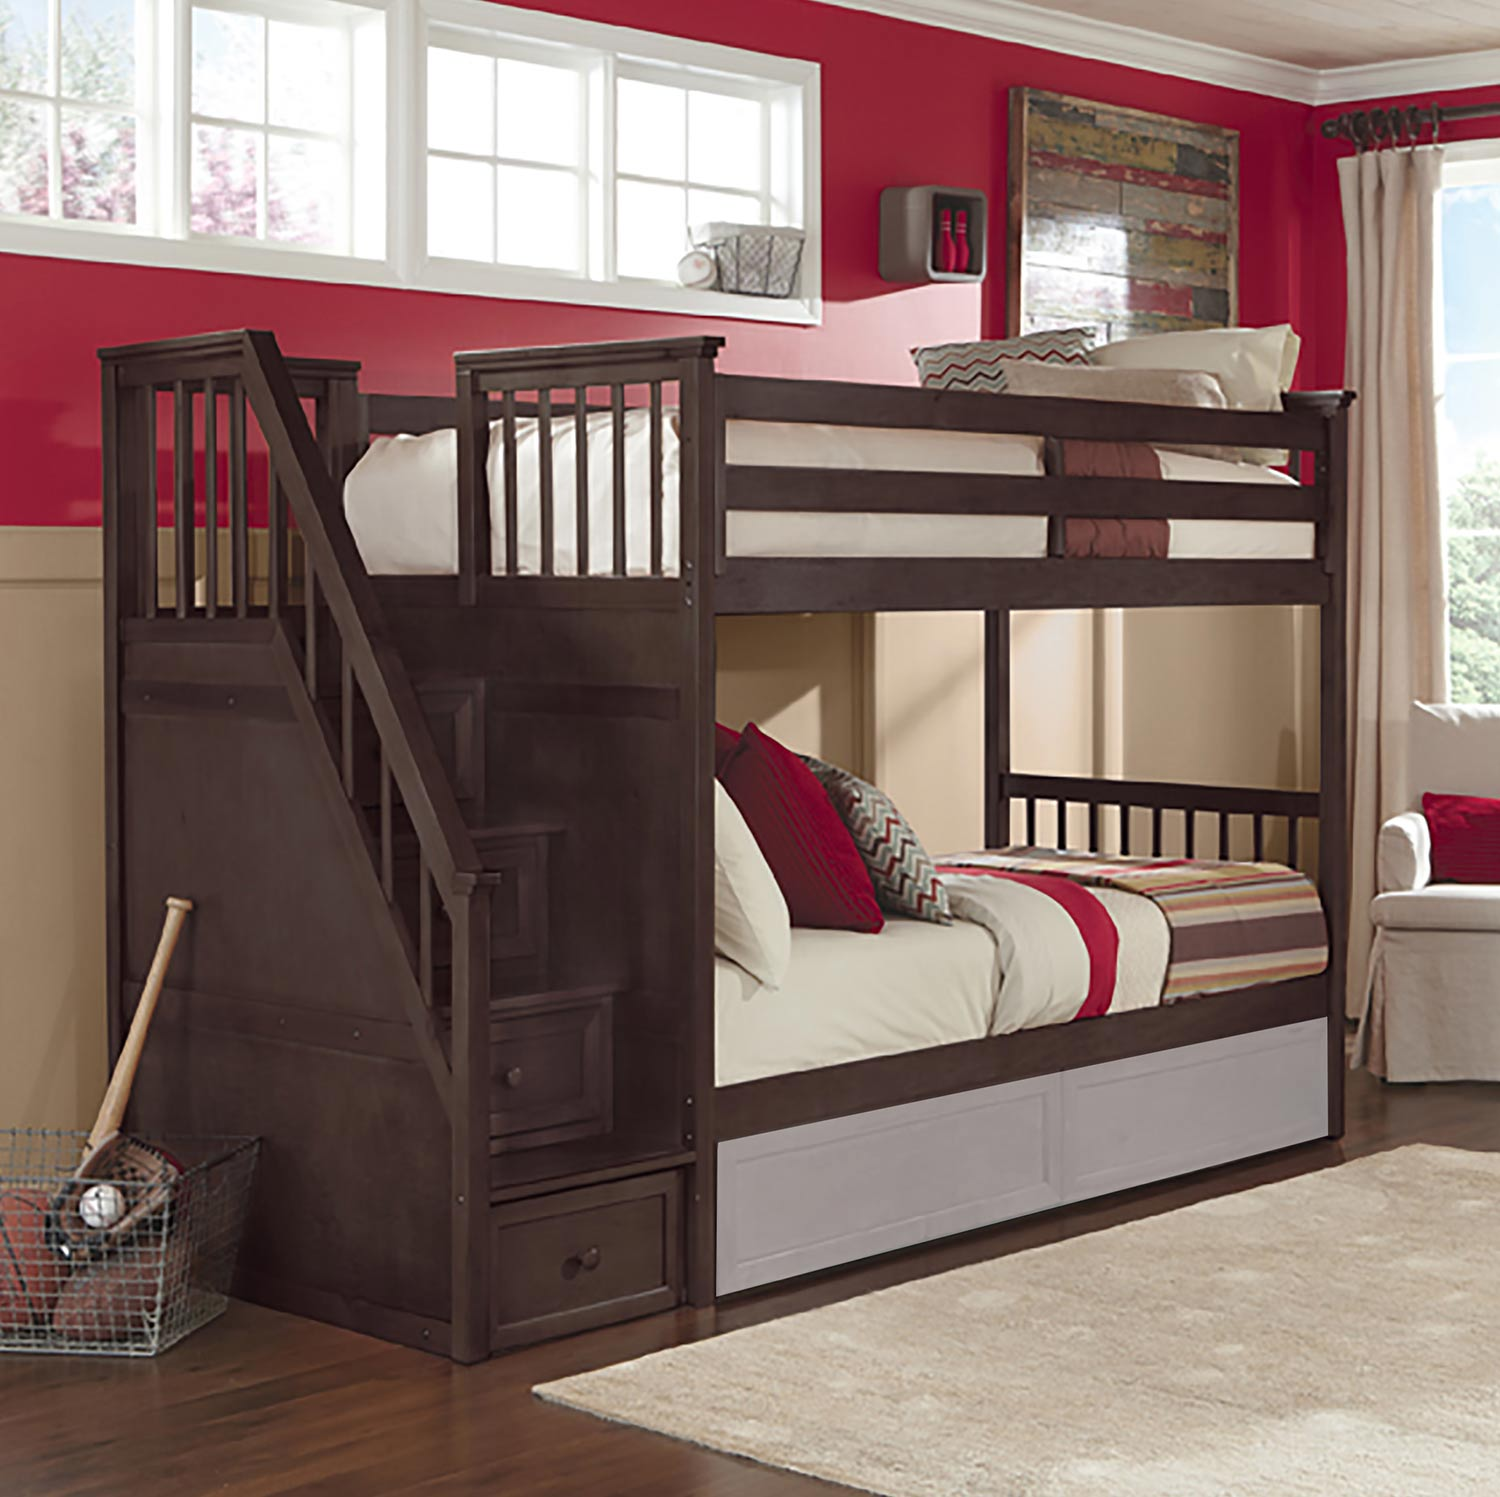 NE Kids SchoolHouse Stair Bunk Bed - Chocolate Finish